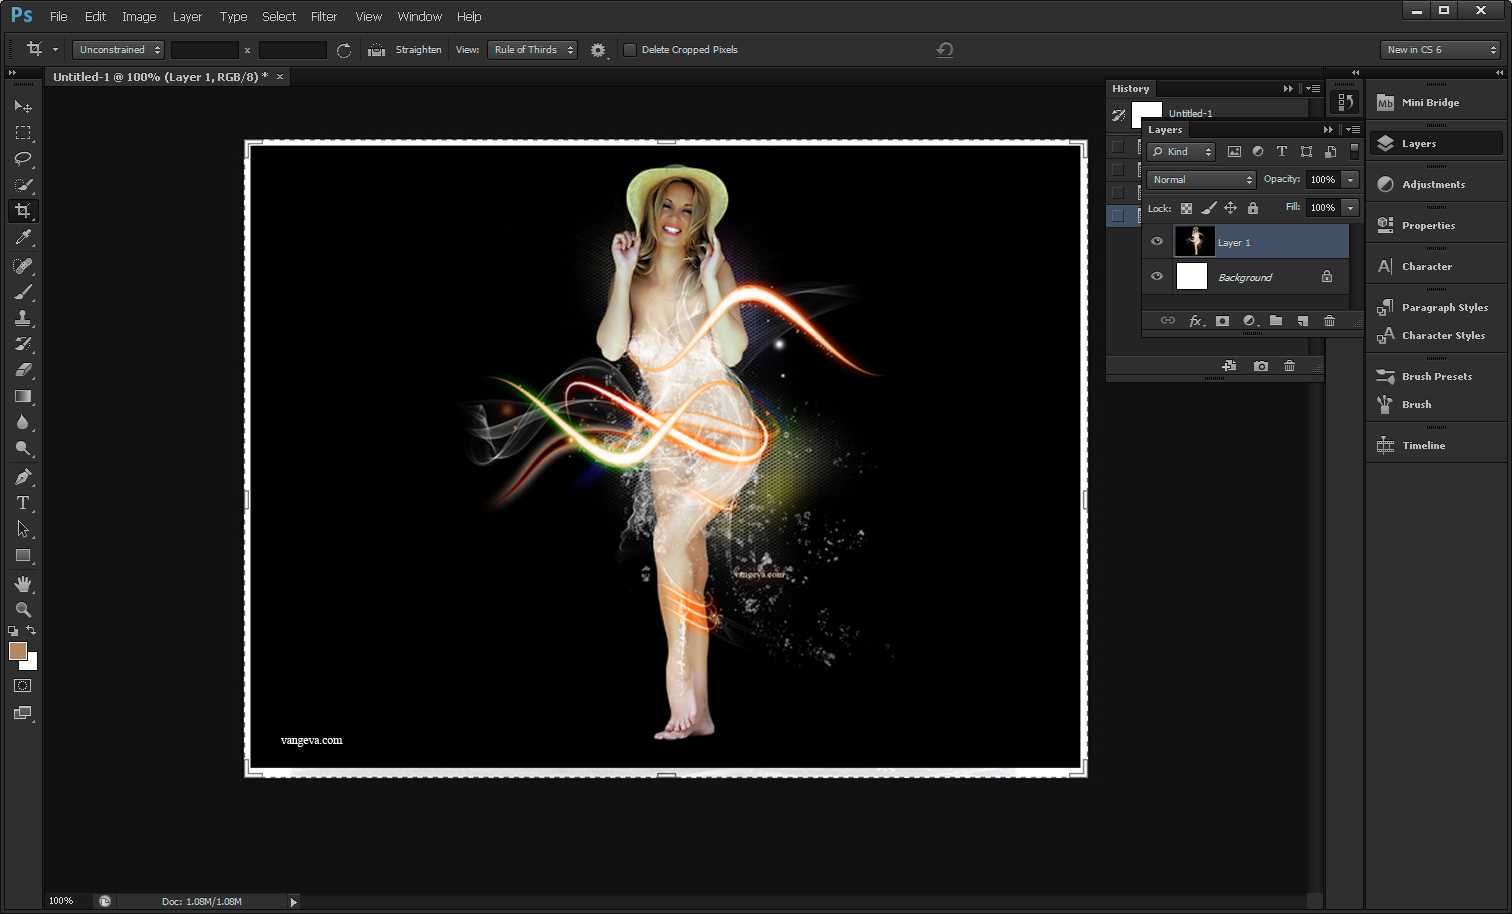 adobe photoshop cs6 premium